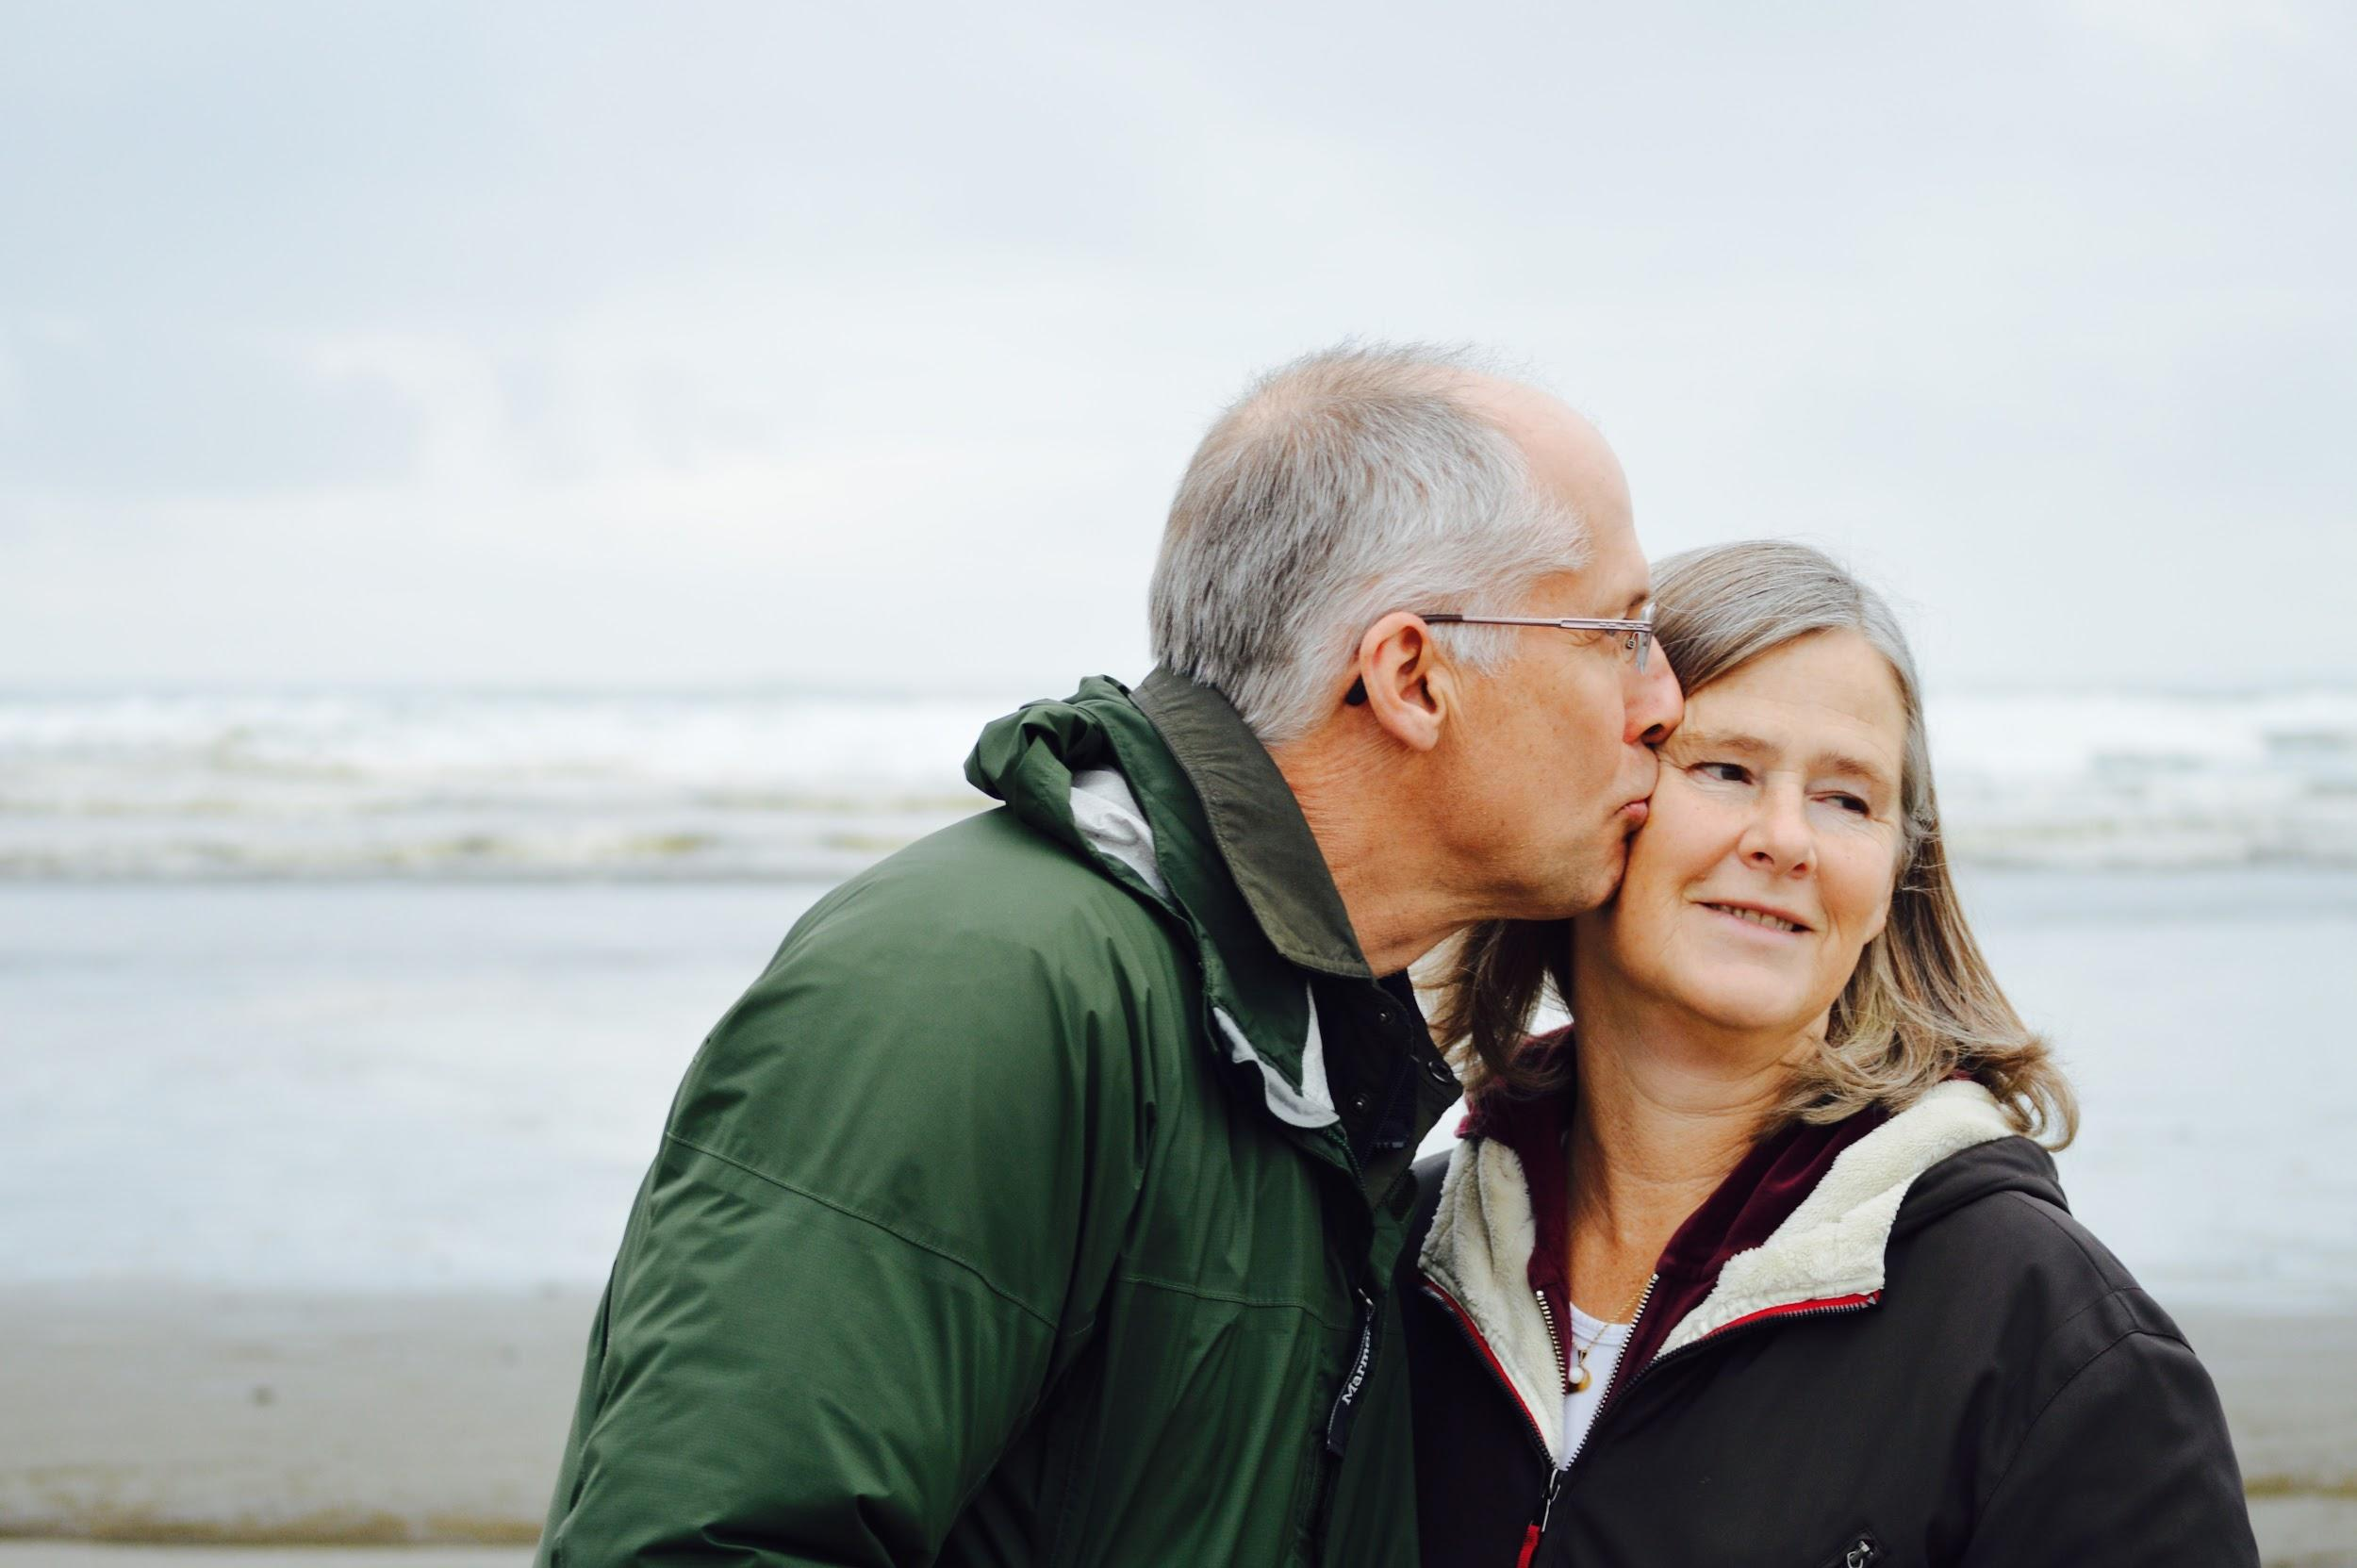 An older male and older female stand on the beach with the ocean behind them. The man is kissing the woman on the cheek.